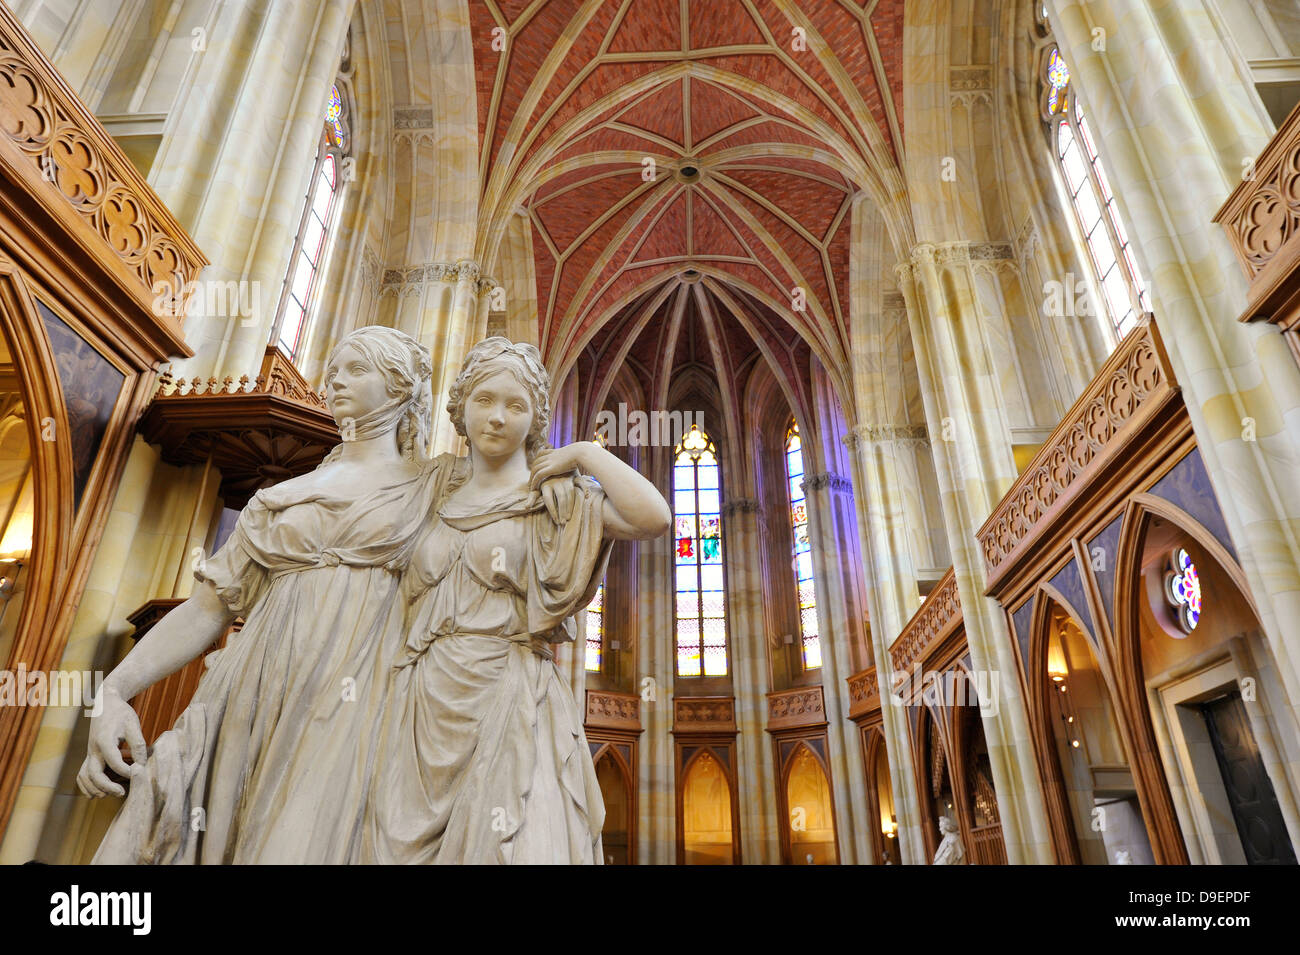 Double statue of the princesses Luise and Friederike of Prussia of Johann Gottfried Schadow, inside view Friedrichswerdersche - Stock Image